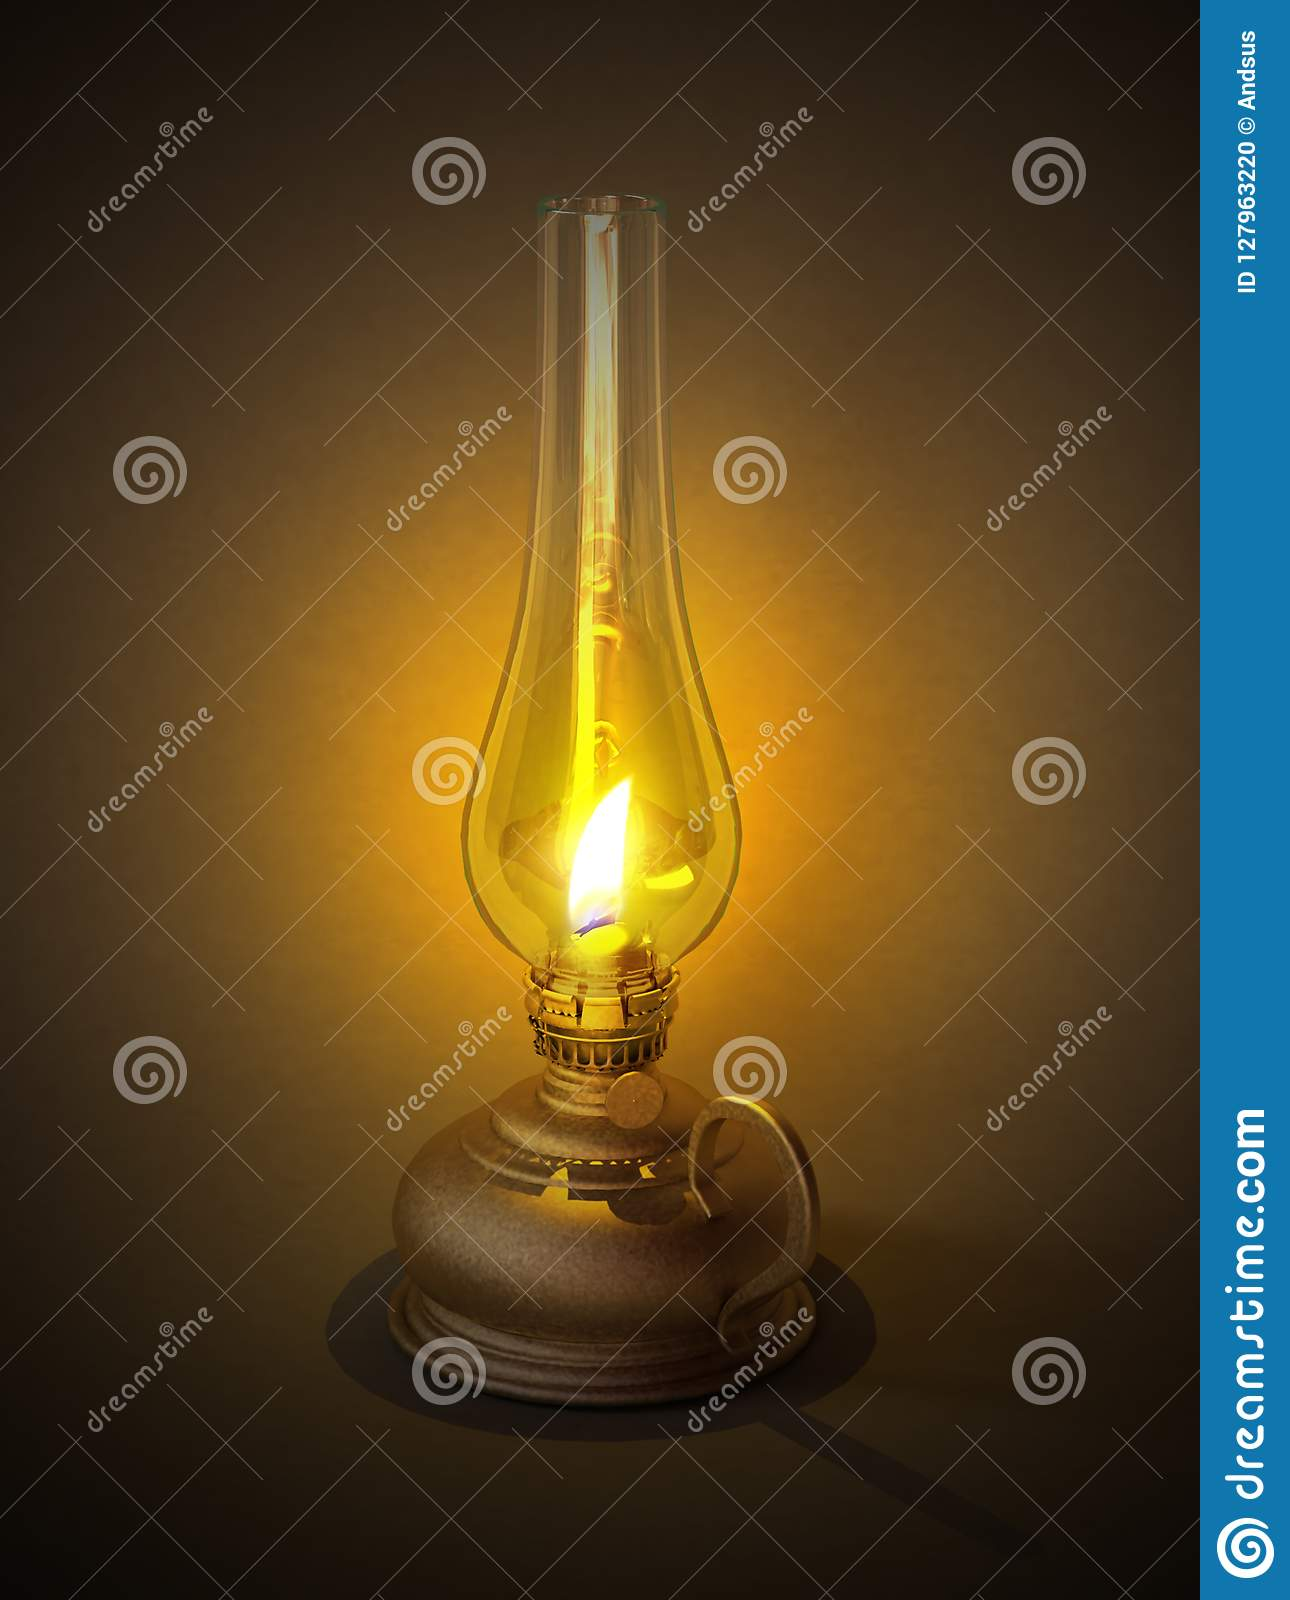 Old Vintage Gas Or Oil Lamp Or Lantern Burns Stock Photo Image Of Glass Handle 127963220